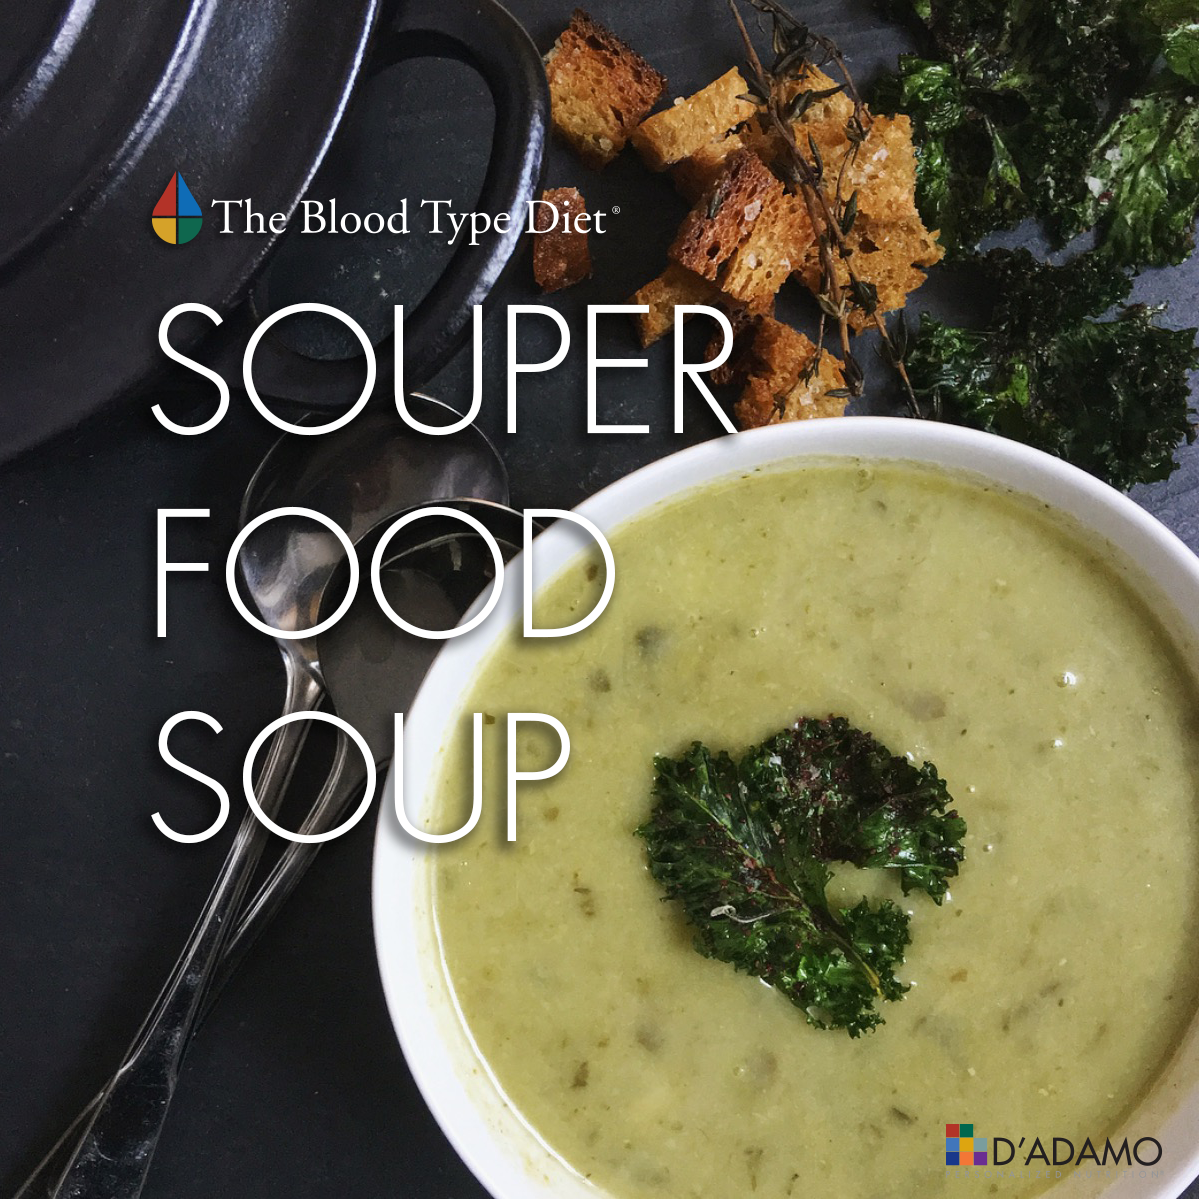 Souper Food Soup